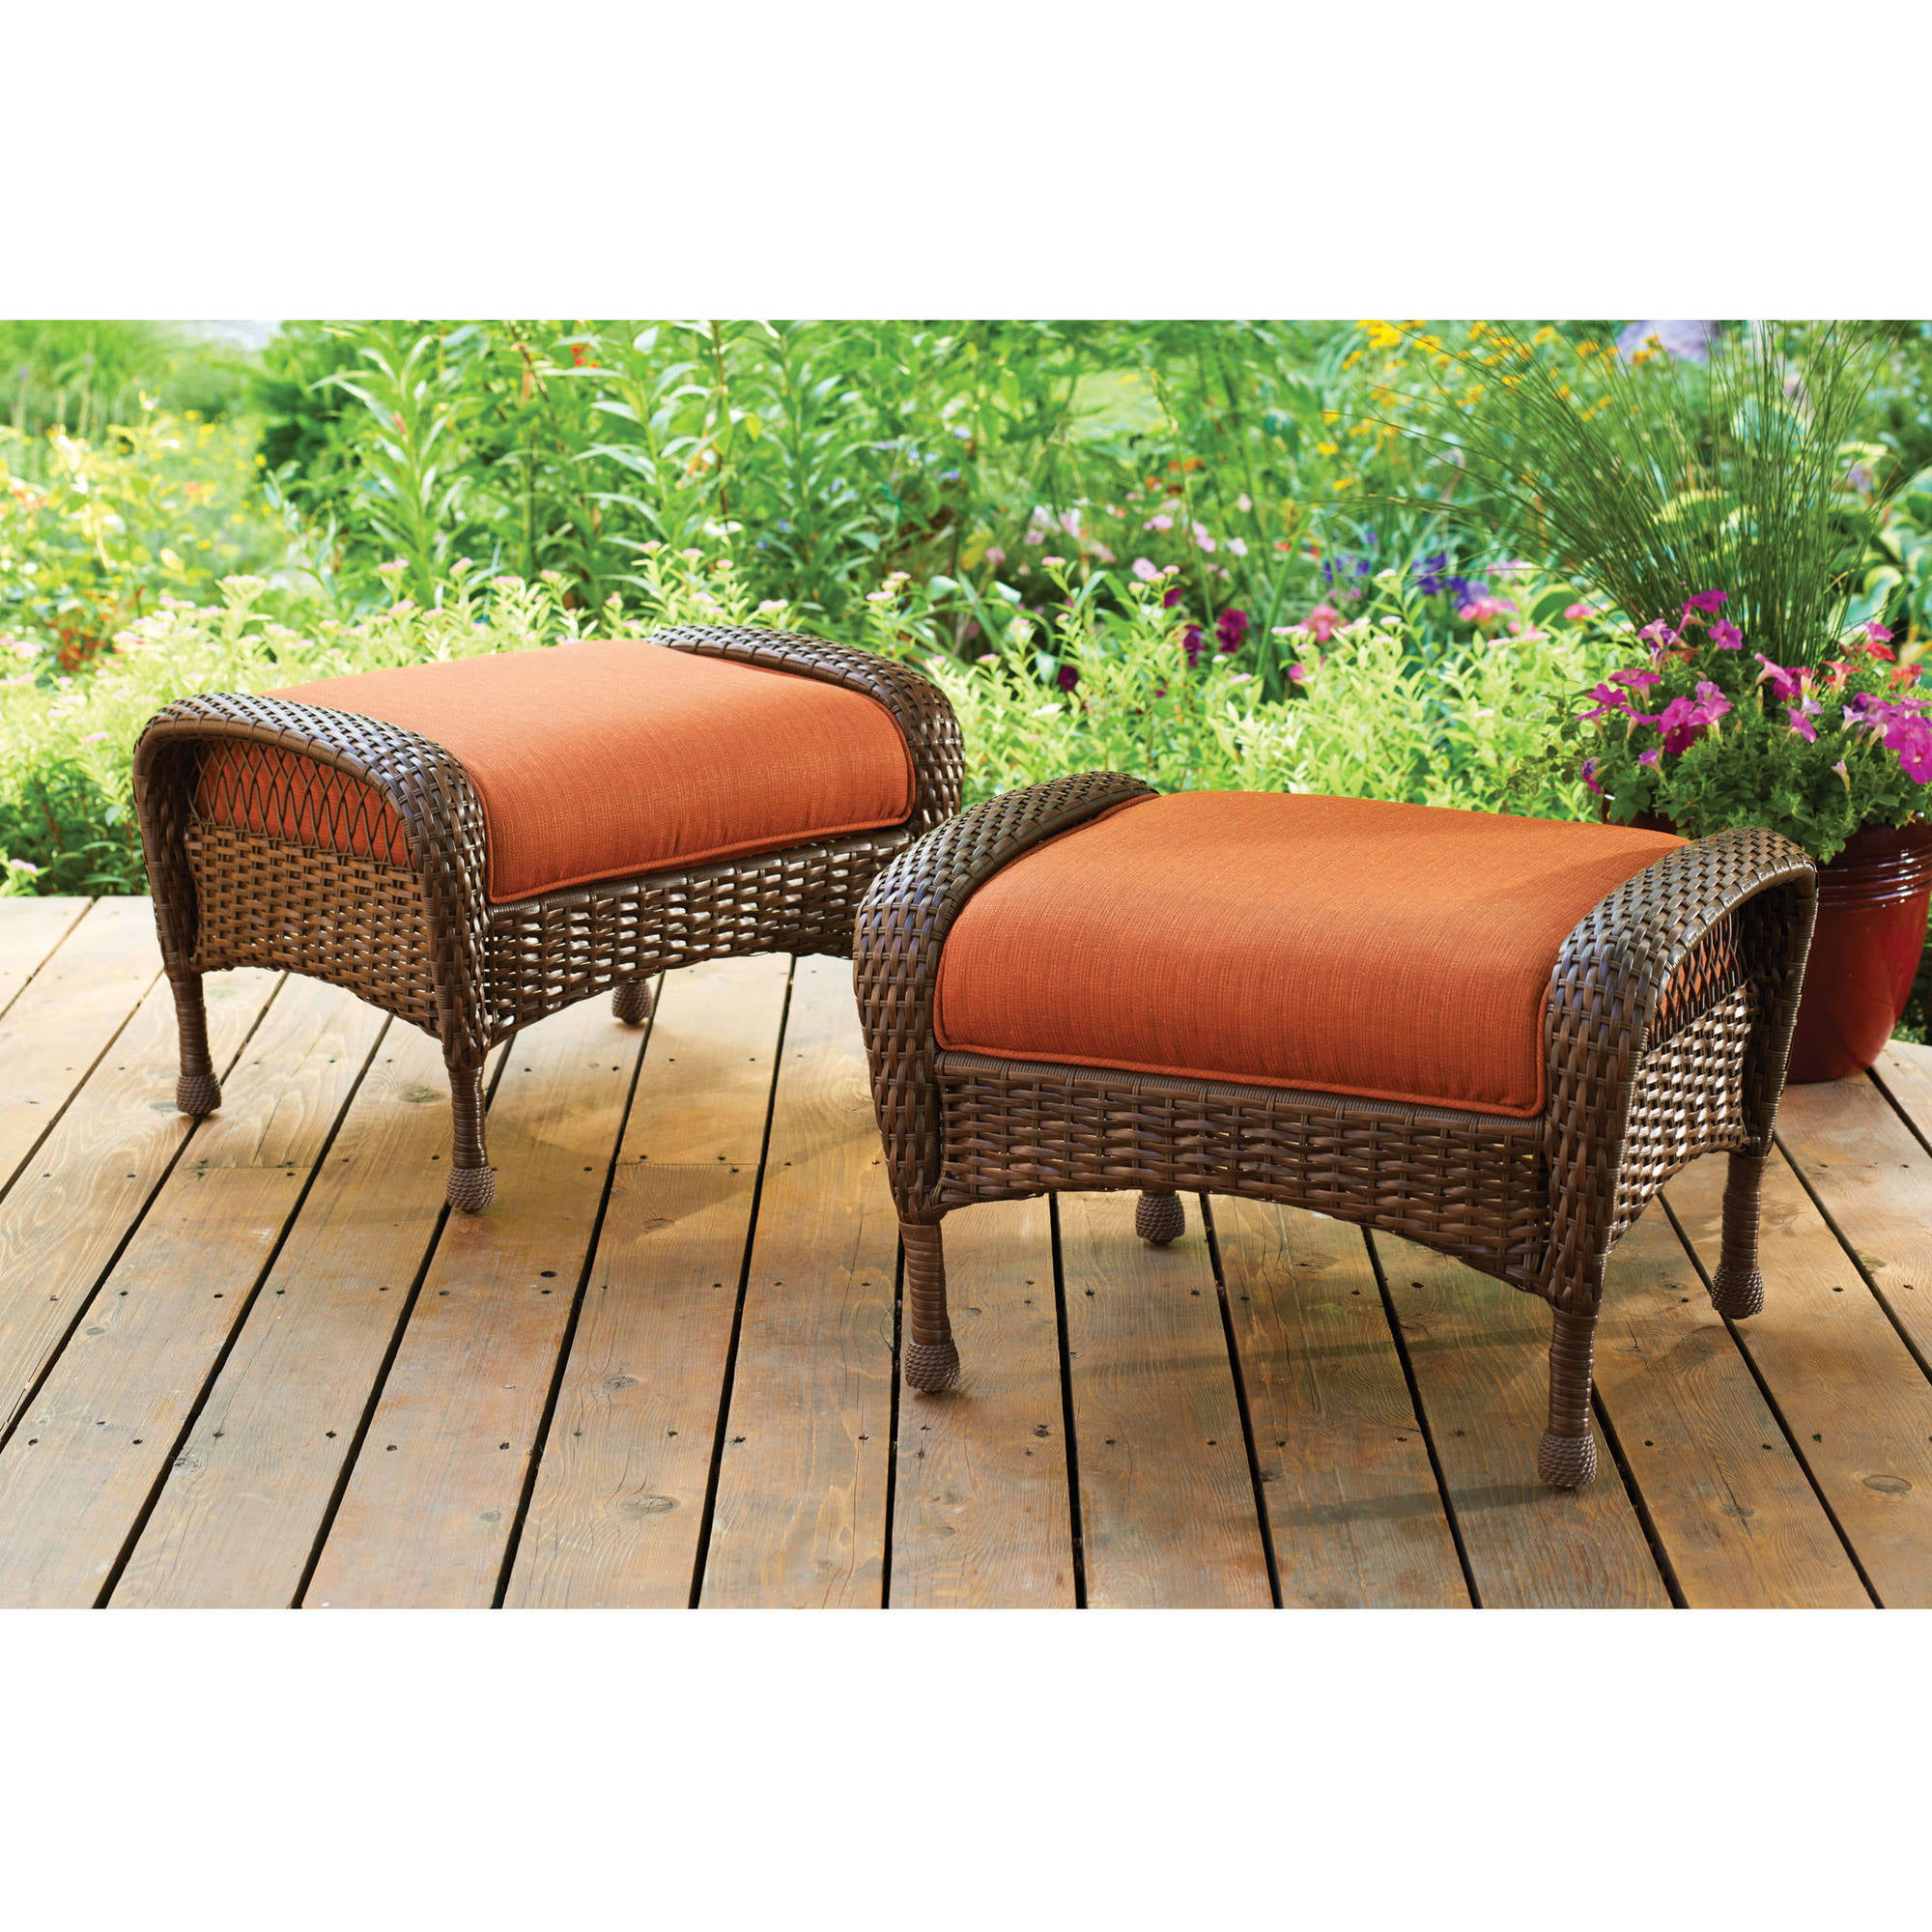 Garden Furniture 4 Less patio furniture - walmart